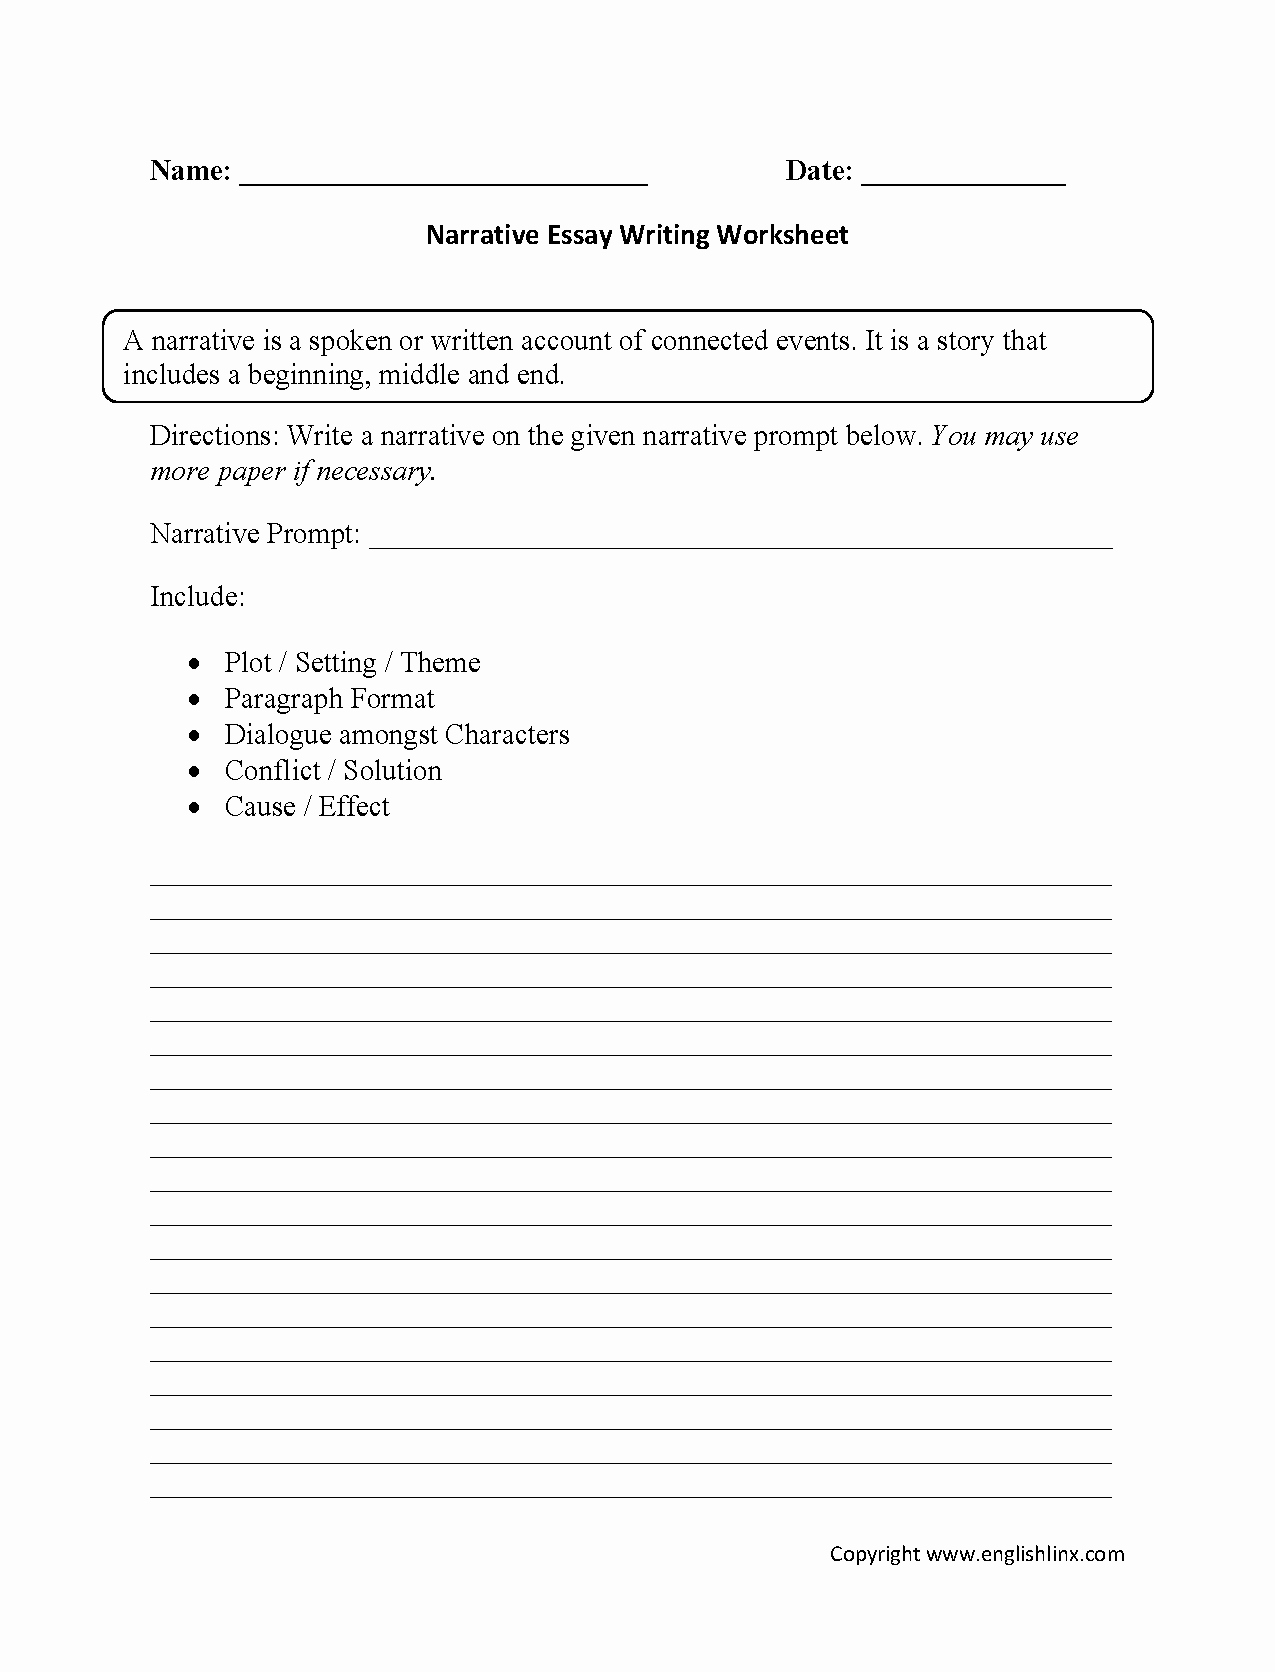 High School Essay Writing Worksheets Lovely Narrative Essay Writing Worksheets